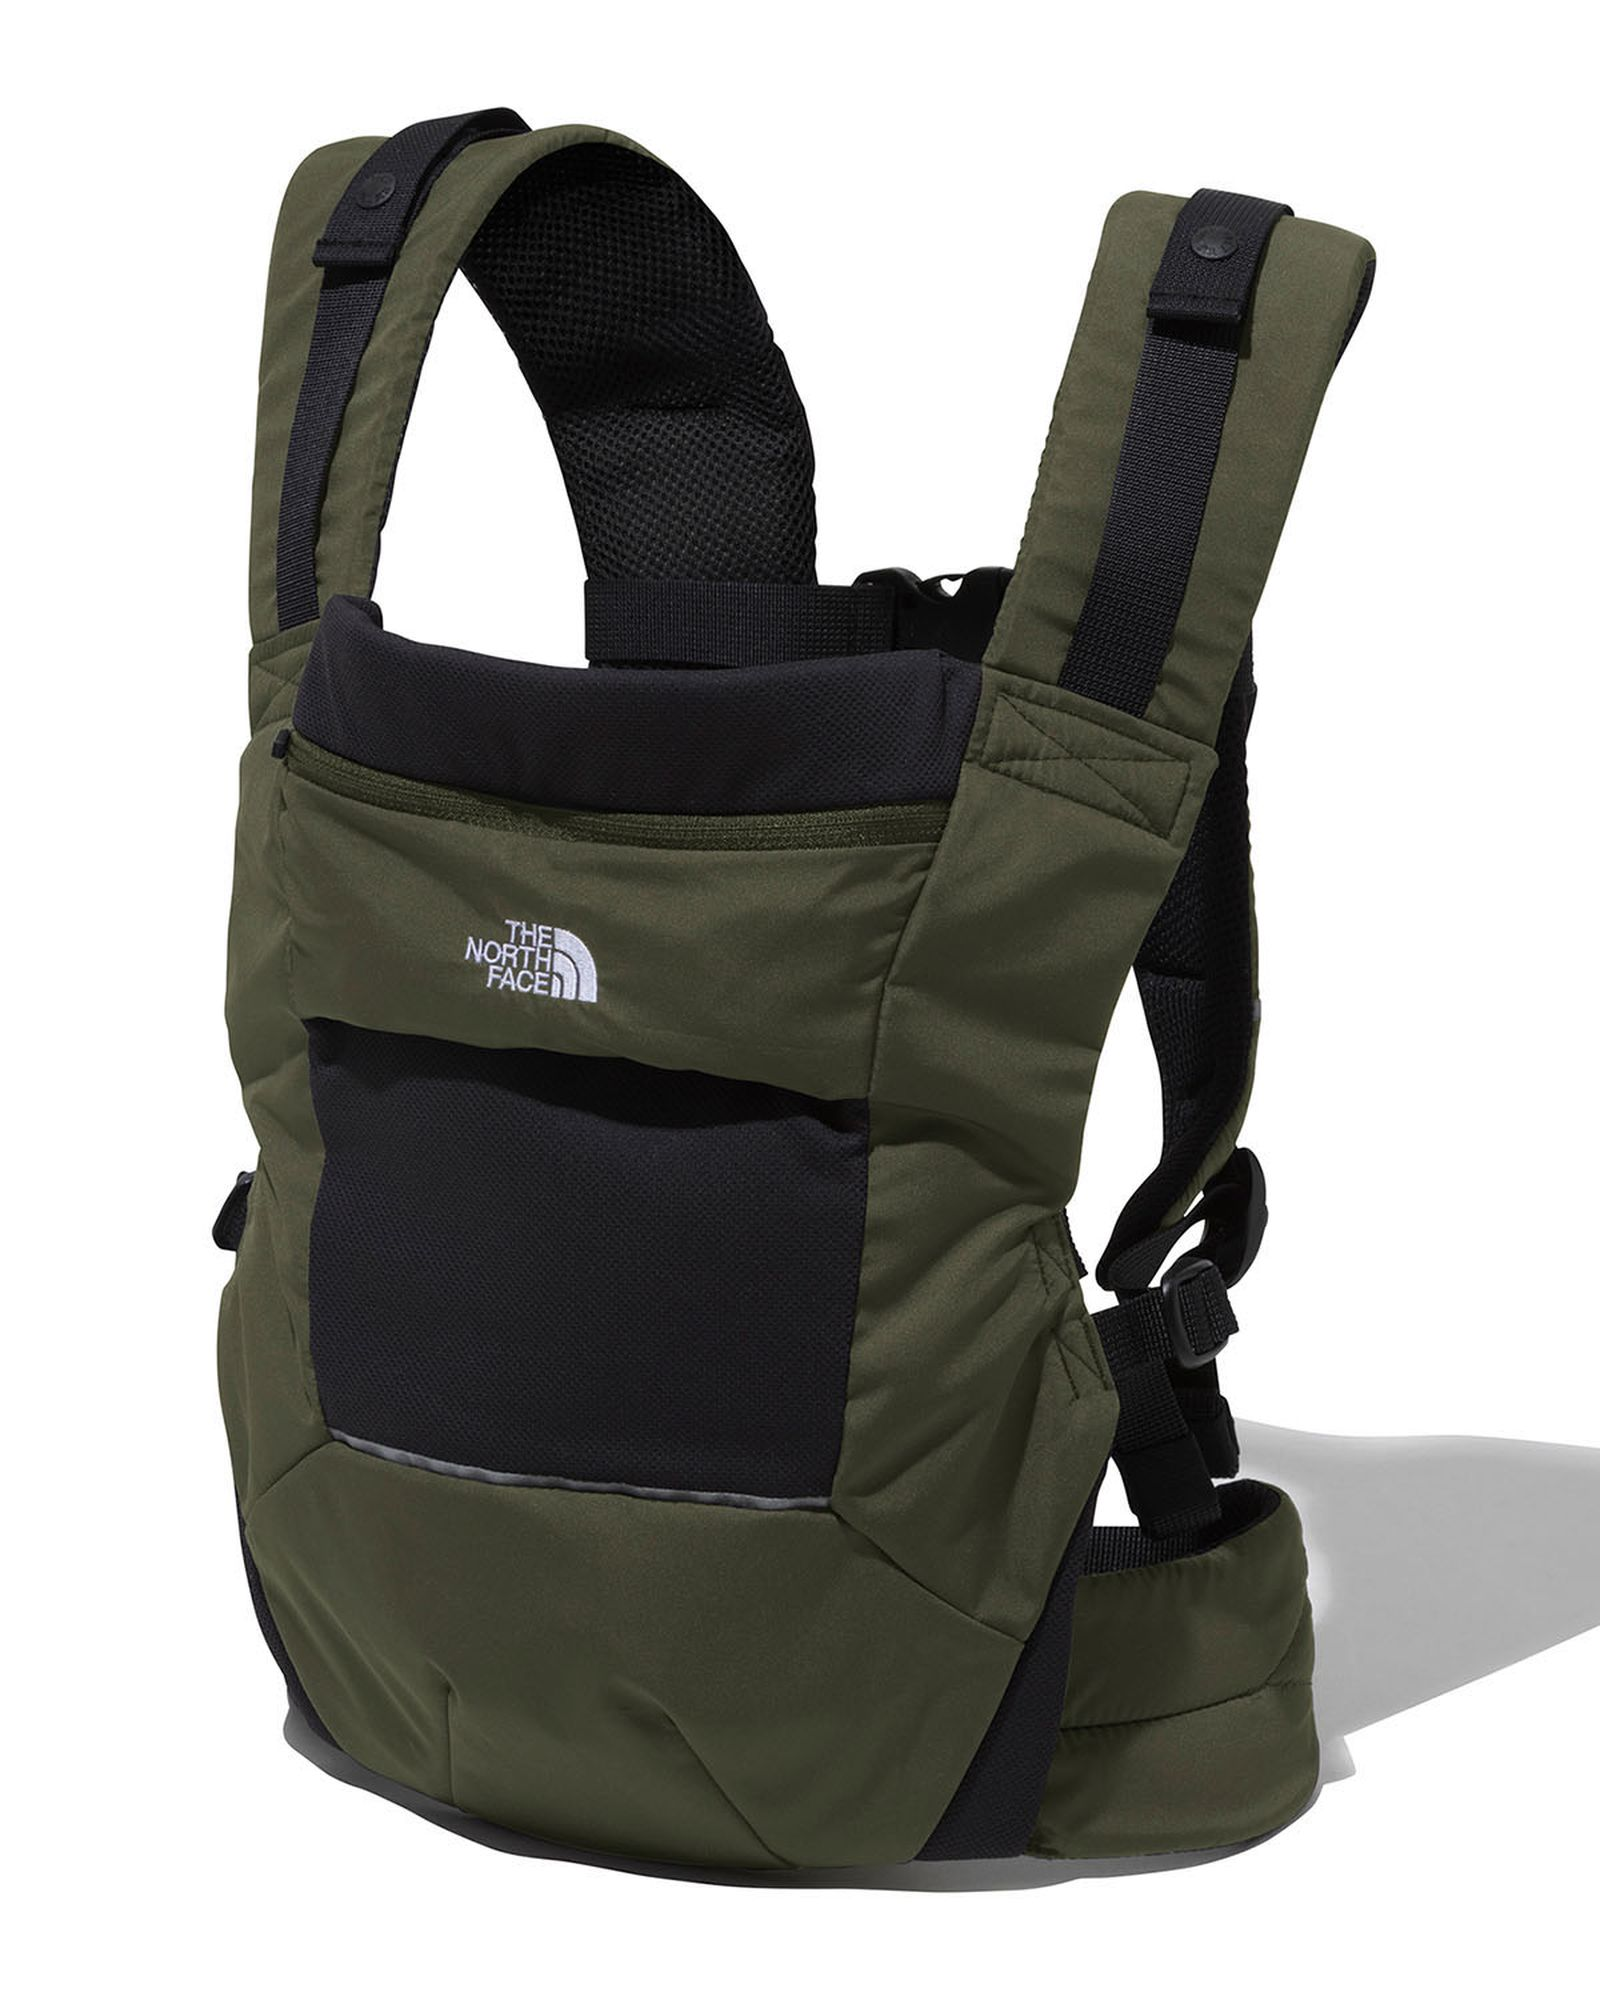 the-north-face-baby-carrier-04